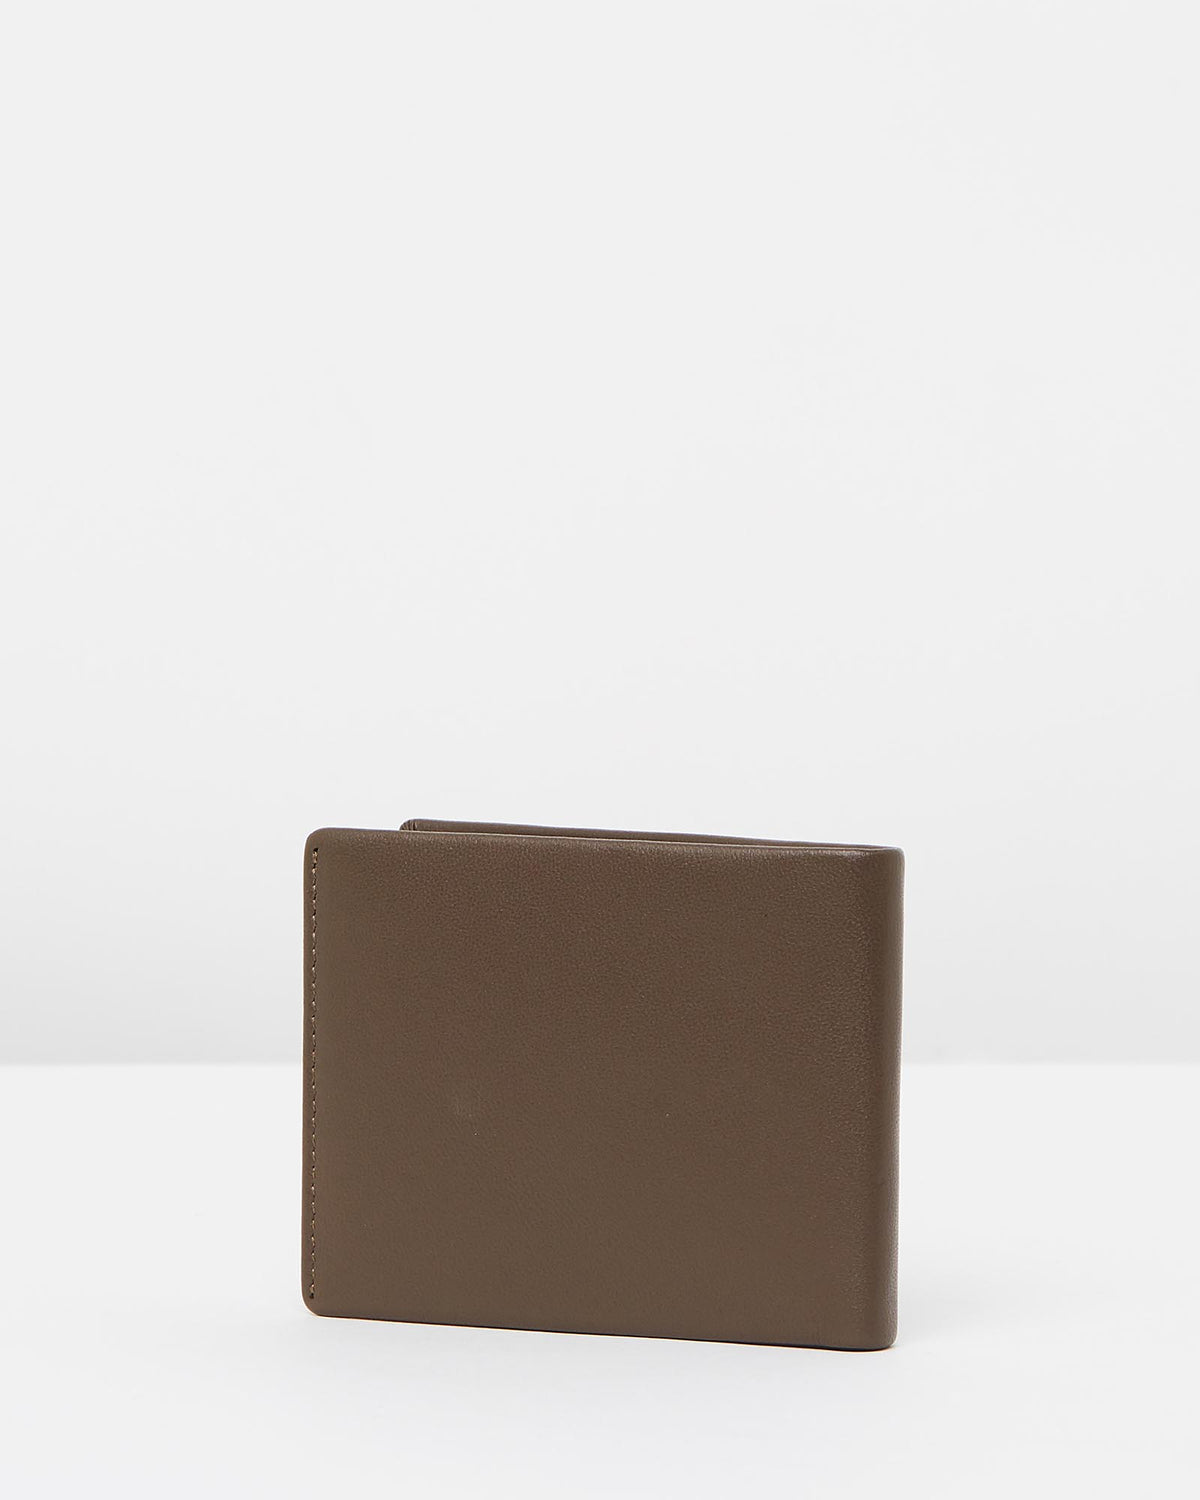 The Statesman Wallet Leather Mocha